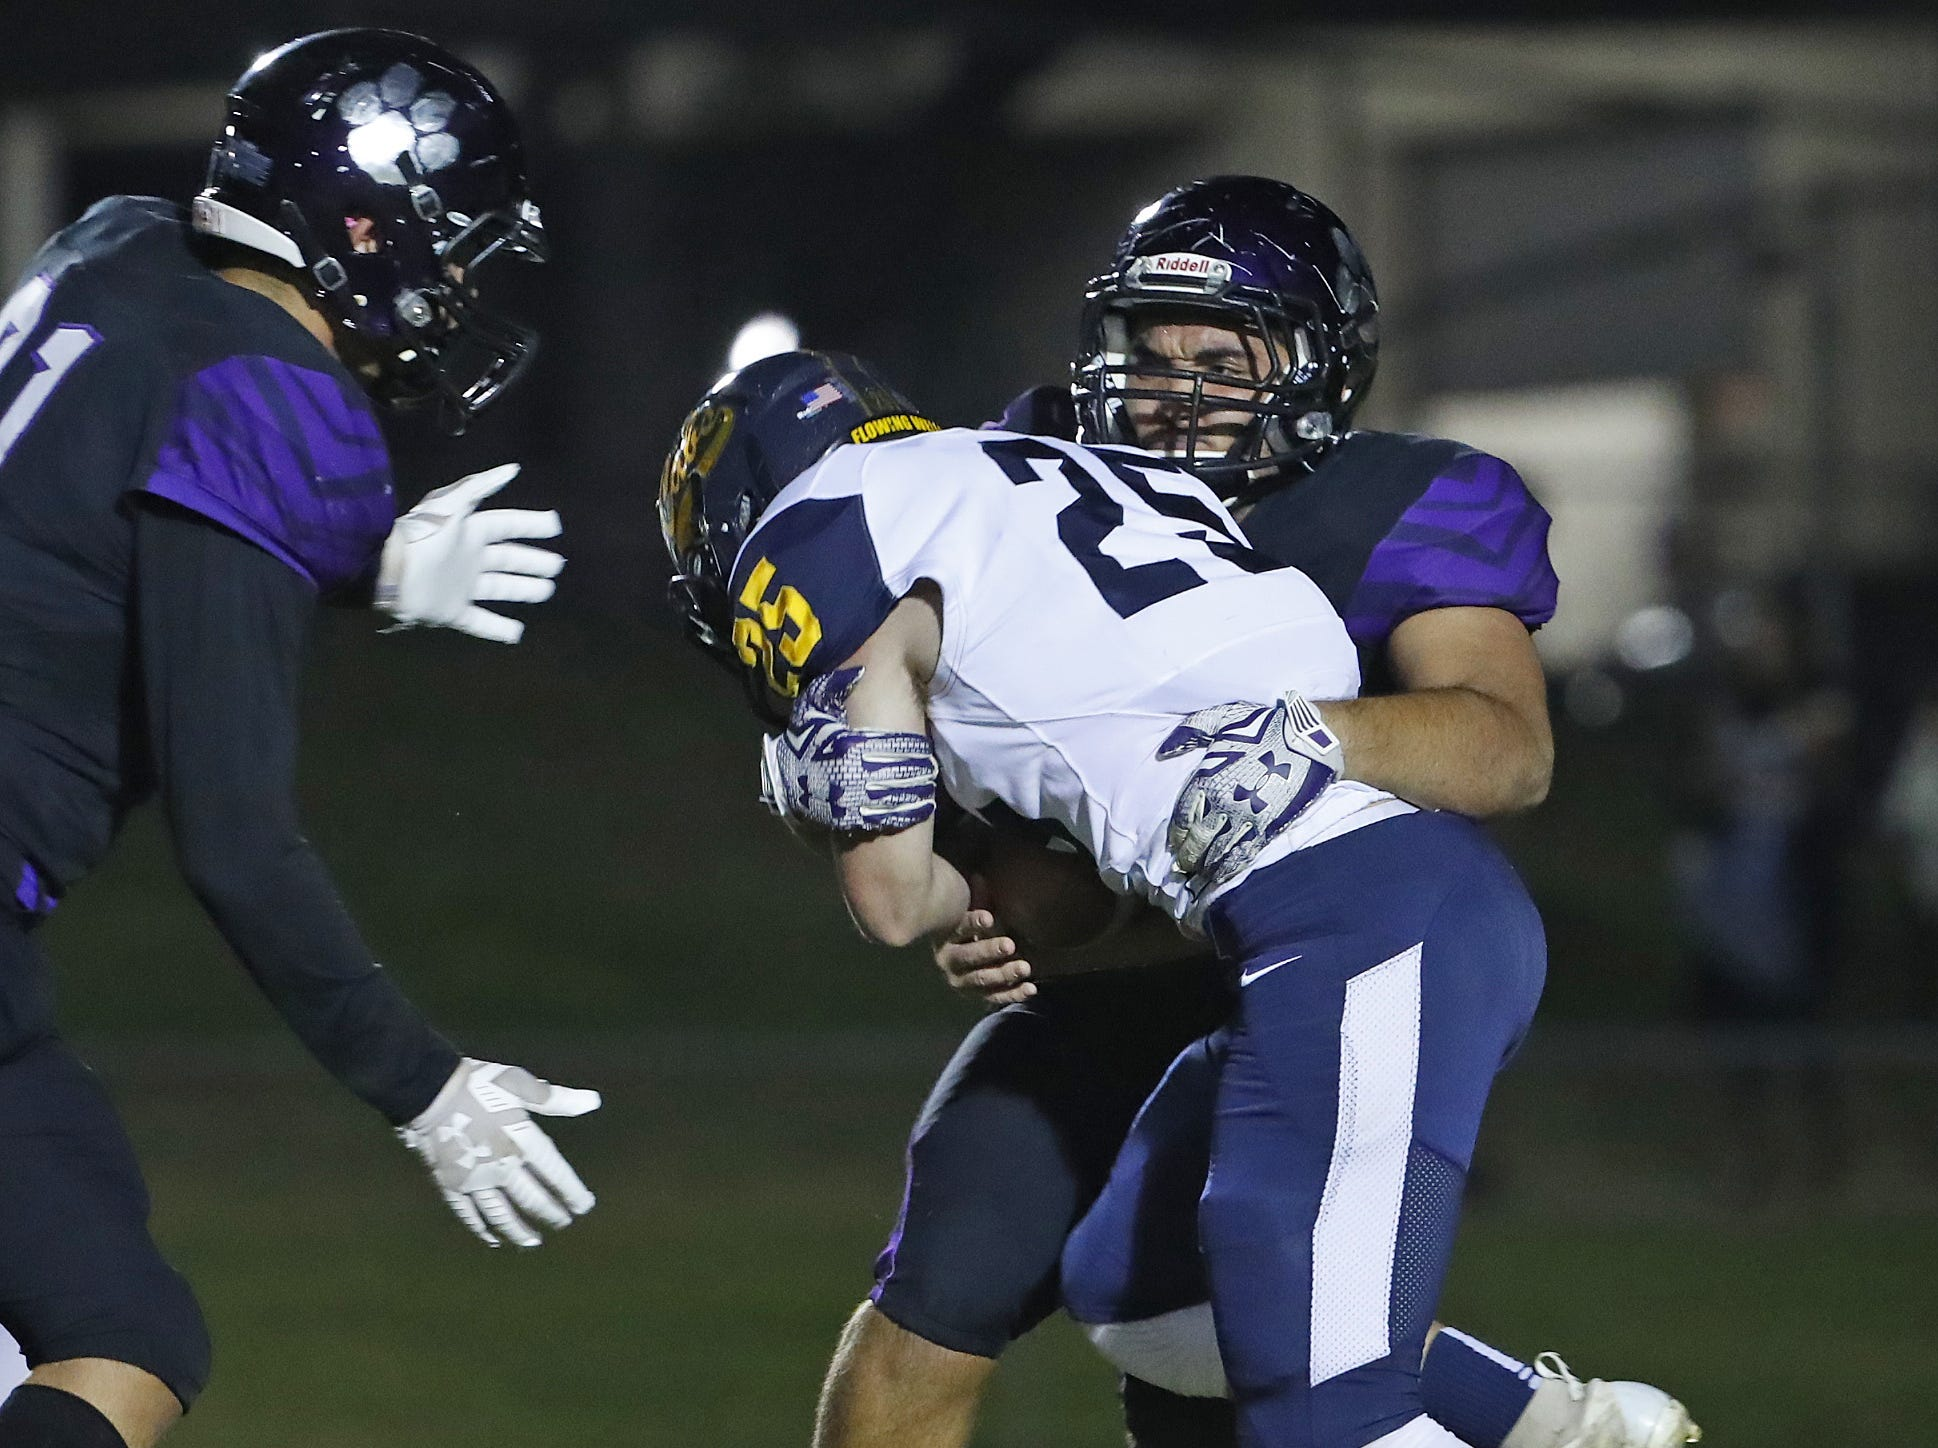 Millennium's Cristian Rodriguez (50) tackles Flowing Wells' Blake Bishop (25) during the first round of the AIA State Football Playoffs at Millennium High School in Goodyear, Ariz. on Nov. 2, 2018.